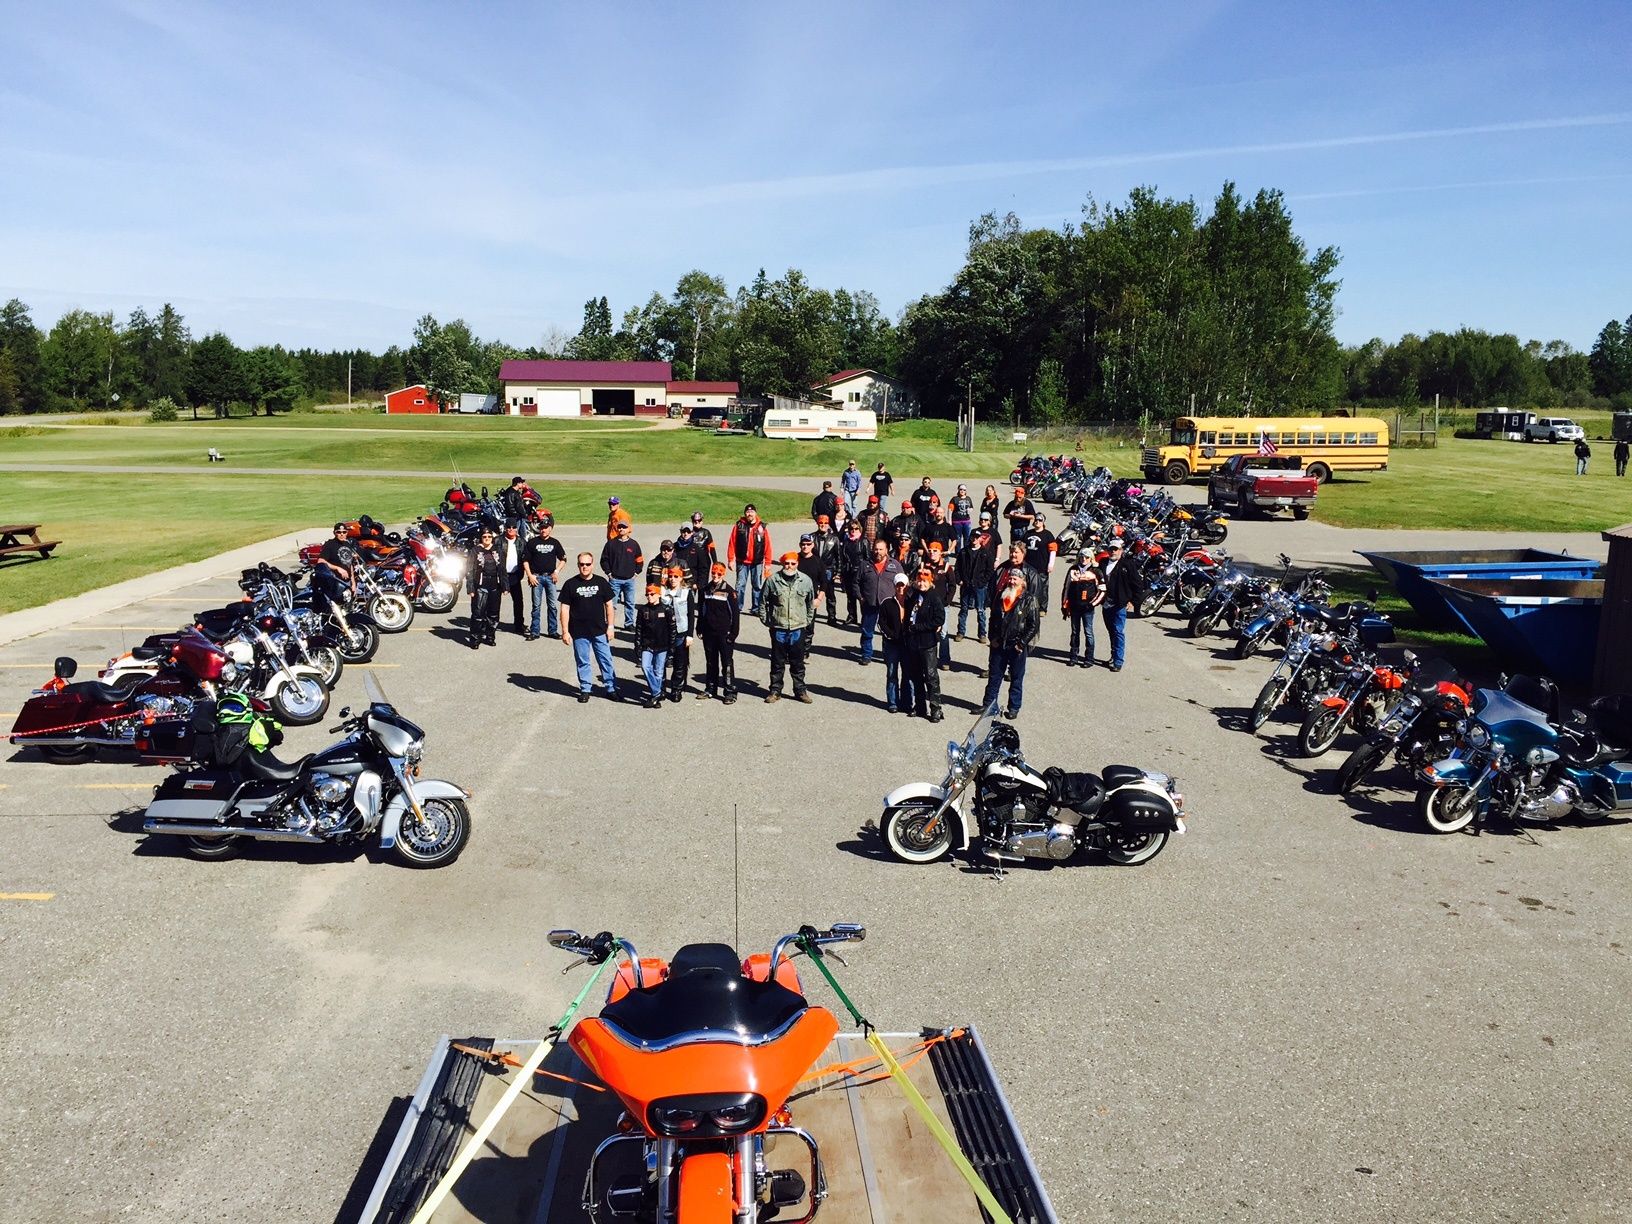 group of motorcycle and riders in the parking lot